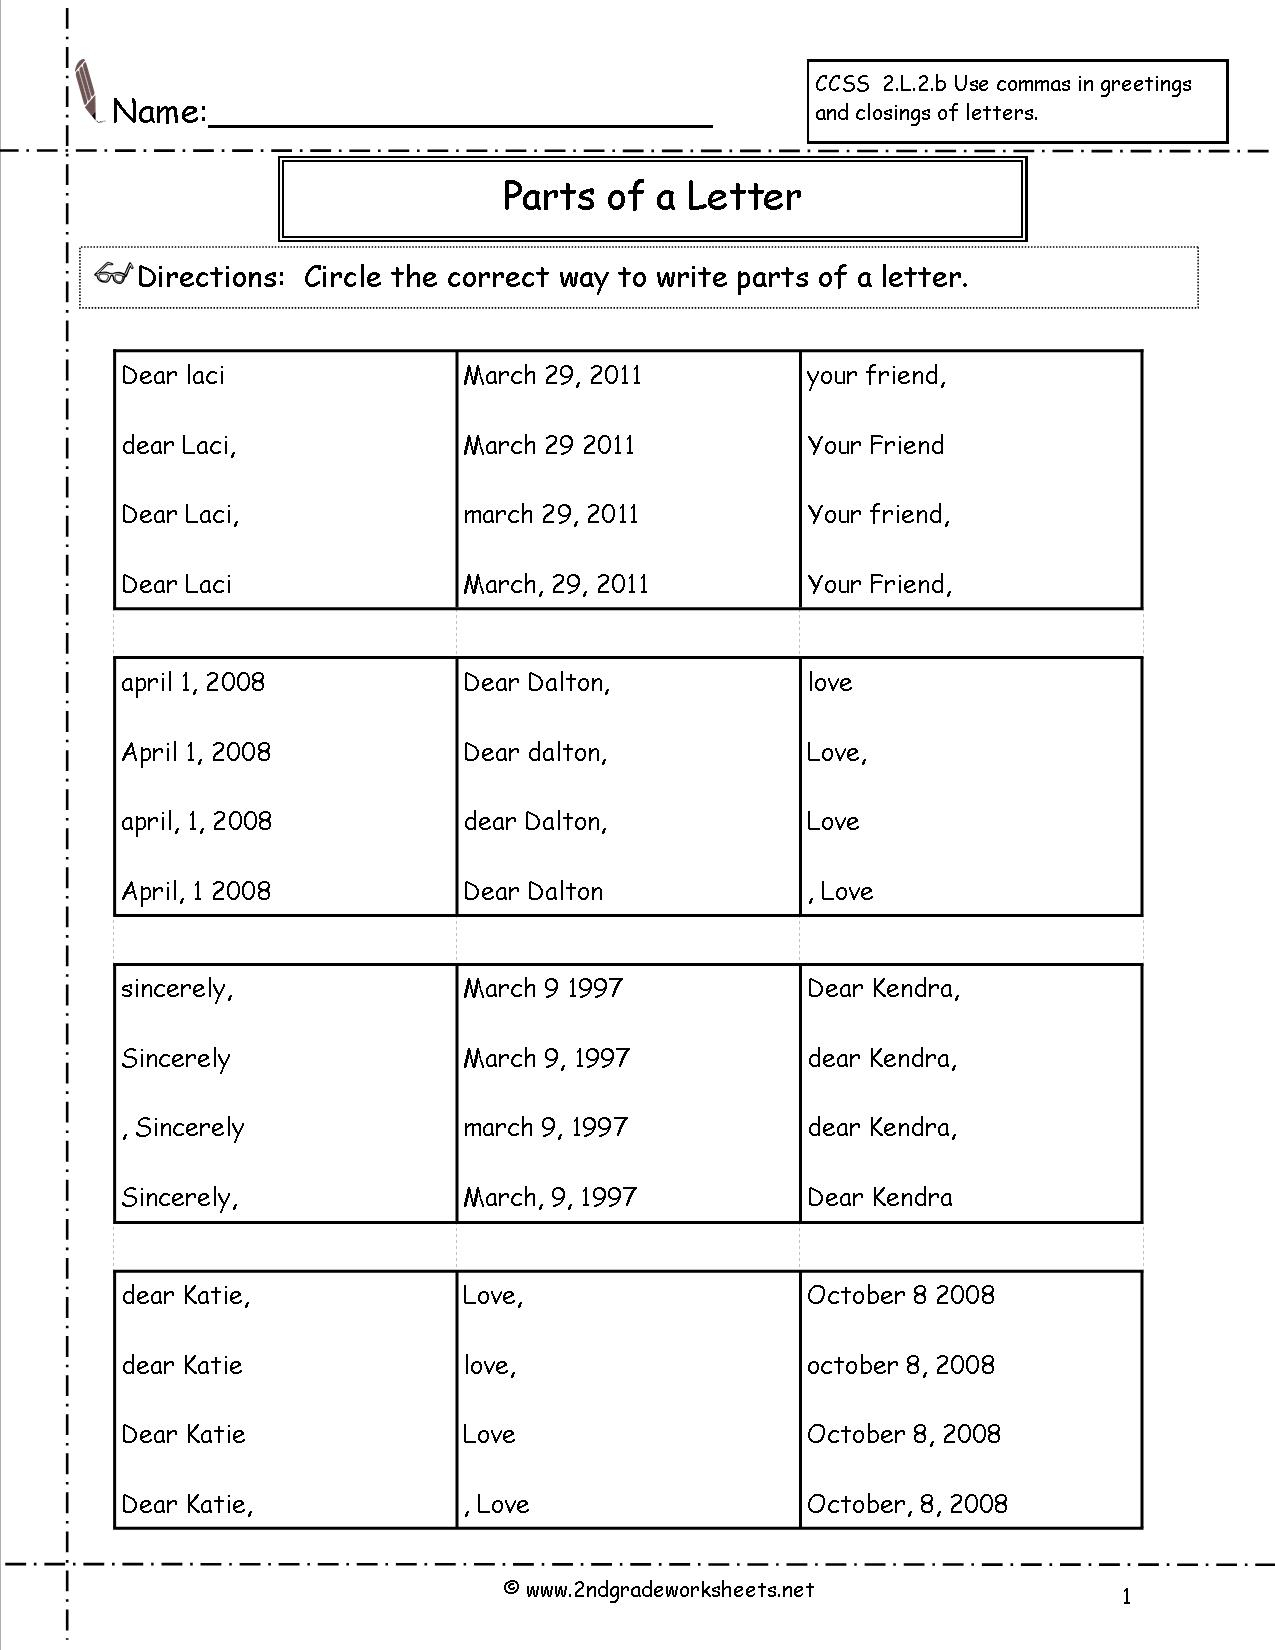 Letters And Parts Of A Letter Worksheet pertaining to Letter Writing Worksheets For Grade 3